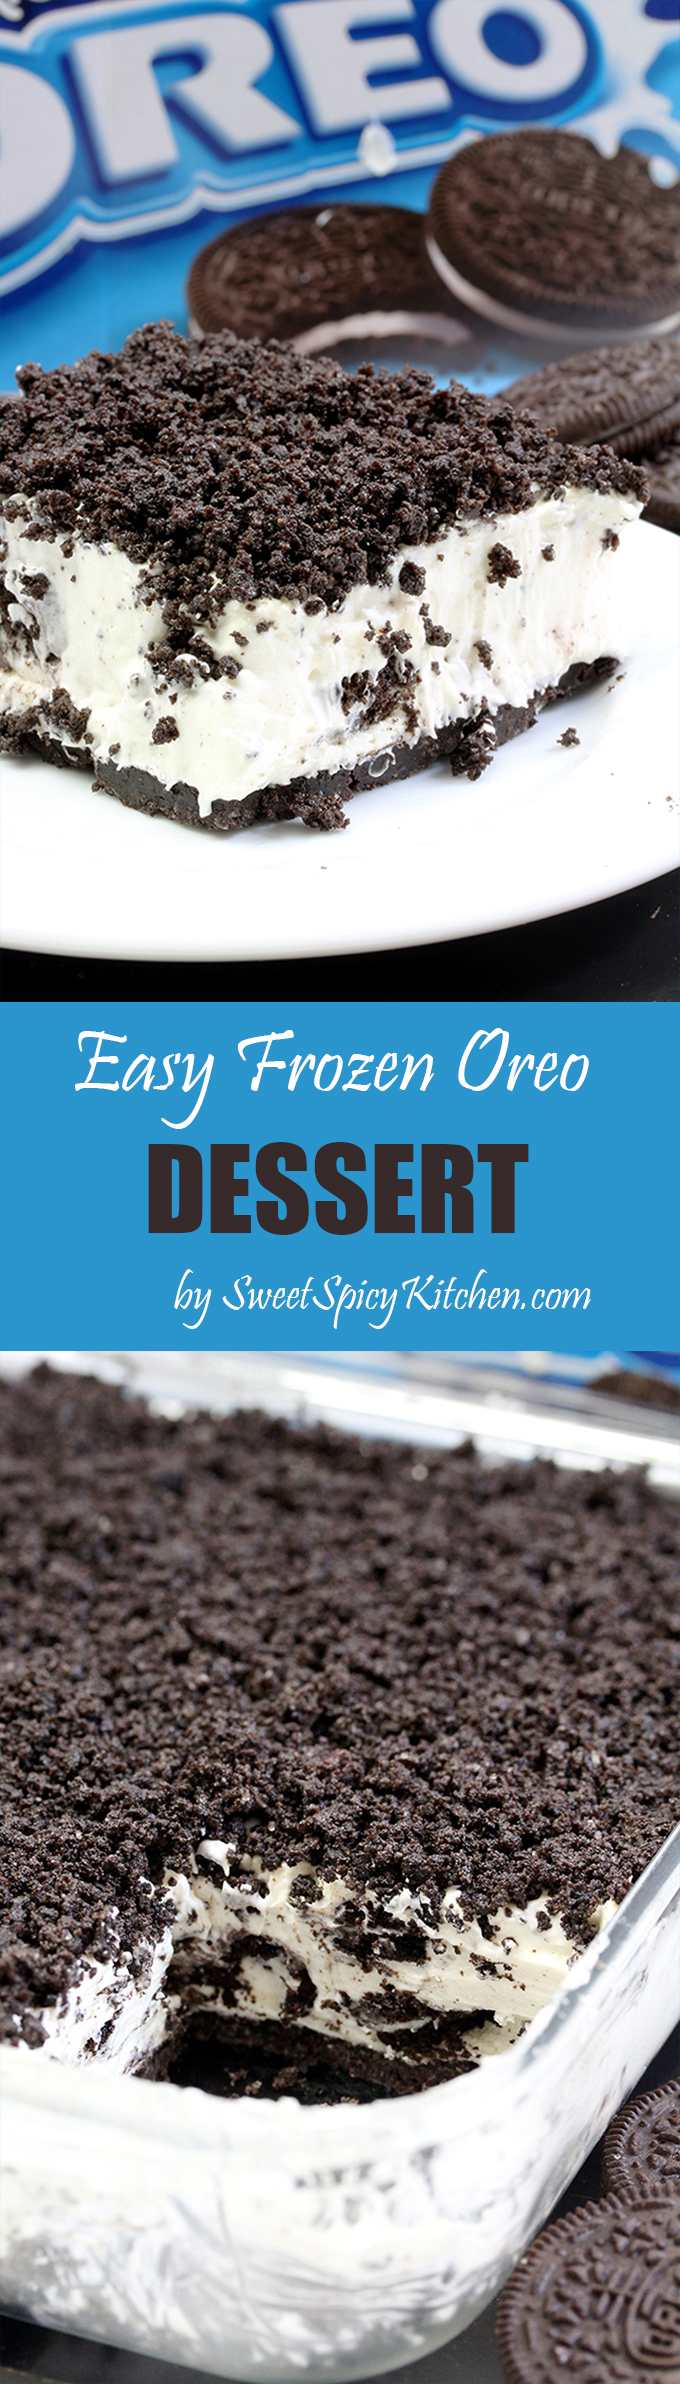 This Easy Frozen Oreo Dessert is light, frozen summer dessert… so easy to prepare – just perfect for Oreo cookie fans. One of my favorite frozen desserts.